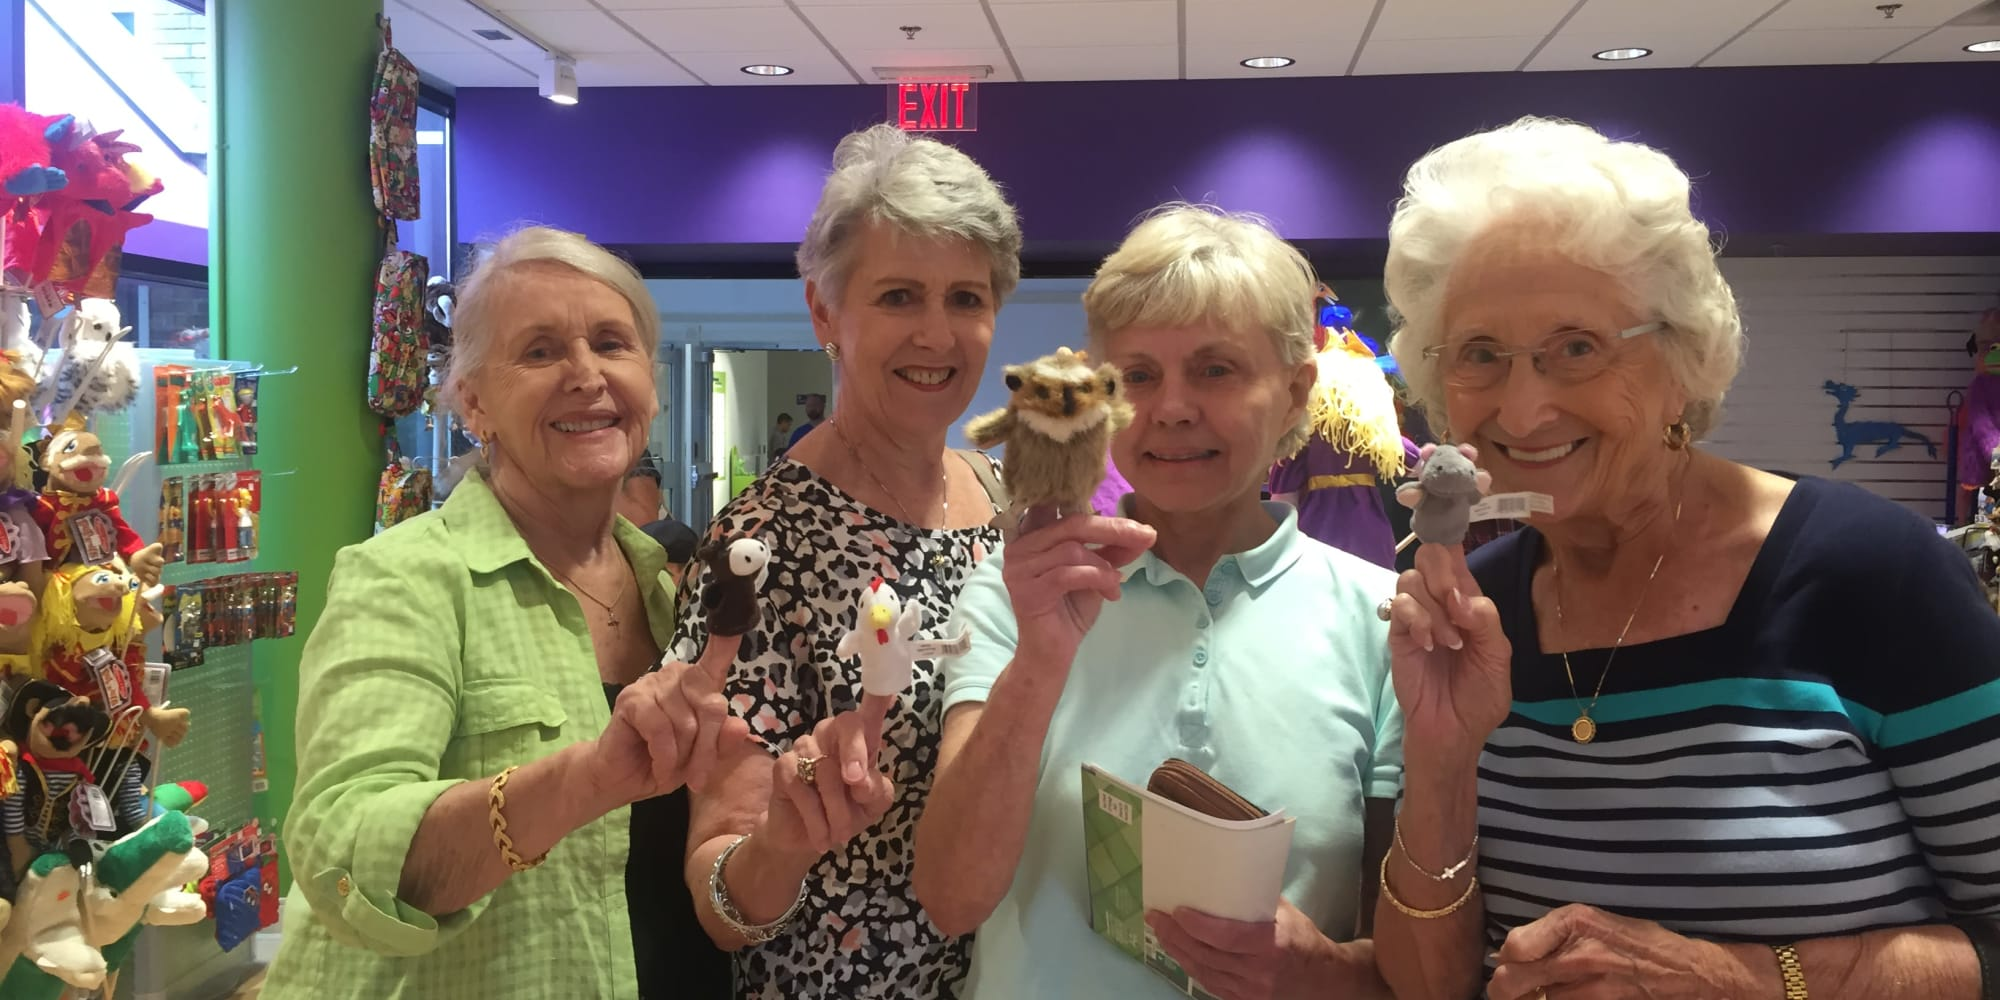 Residents from Amber Park in Pickerington, Ohio with finger puppets in a store